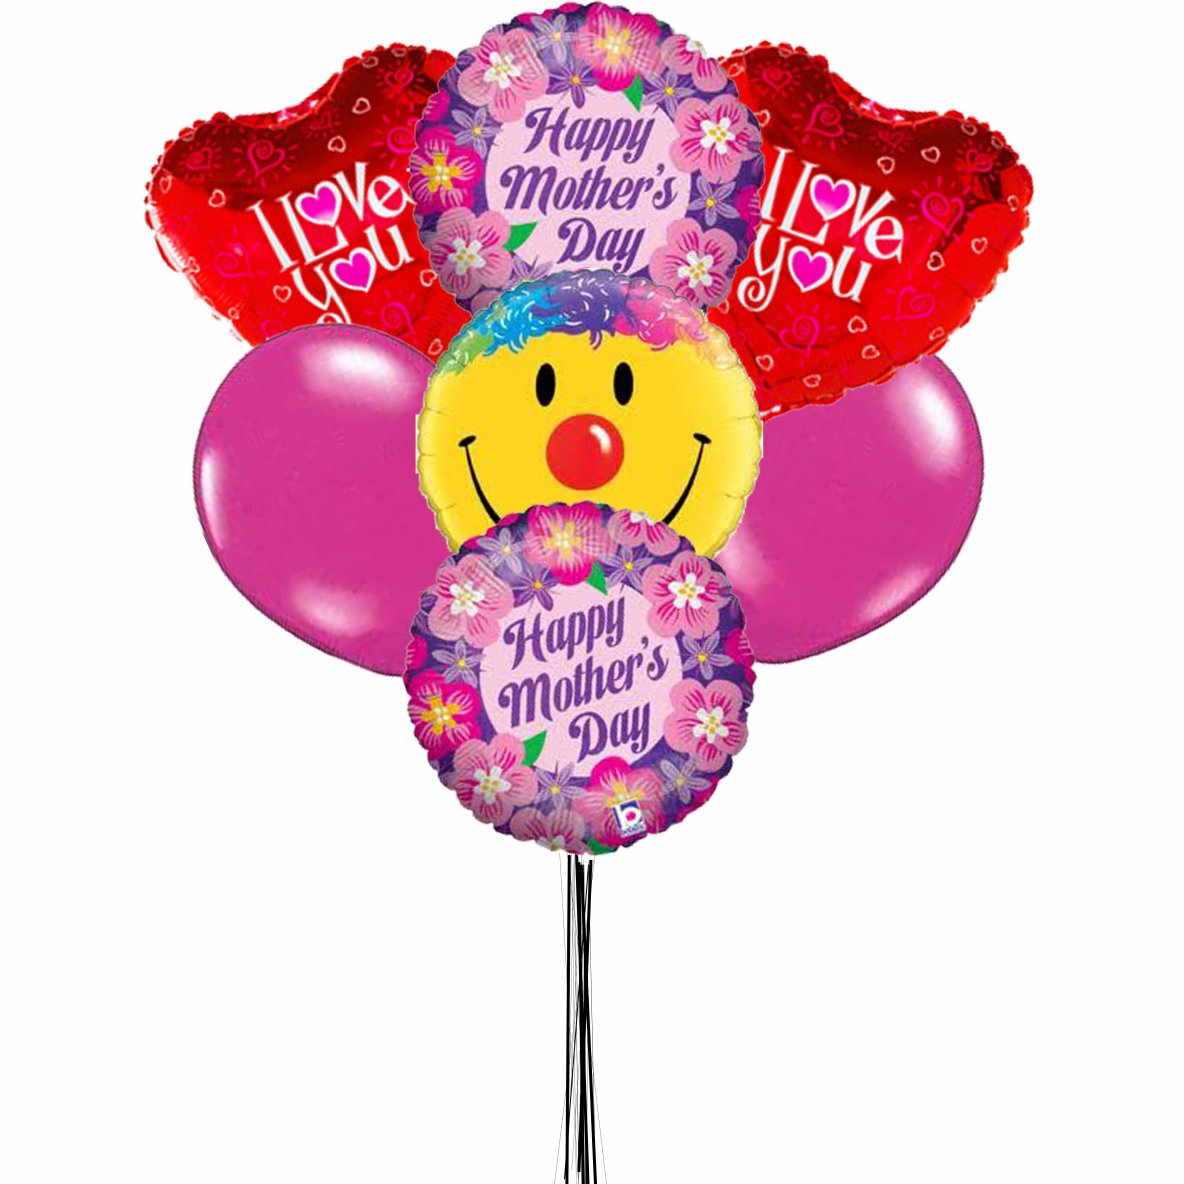 Mothers Day Balloons Delivery – Giftblooms